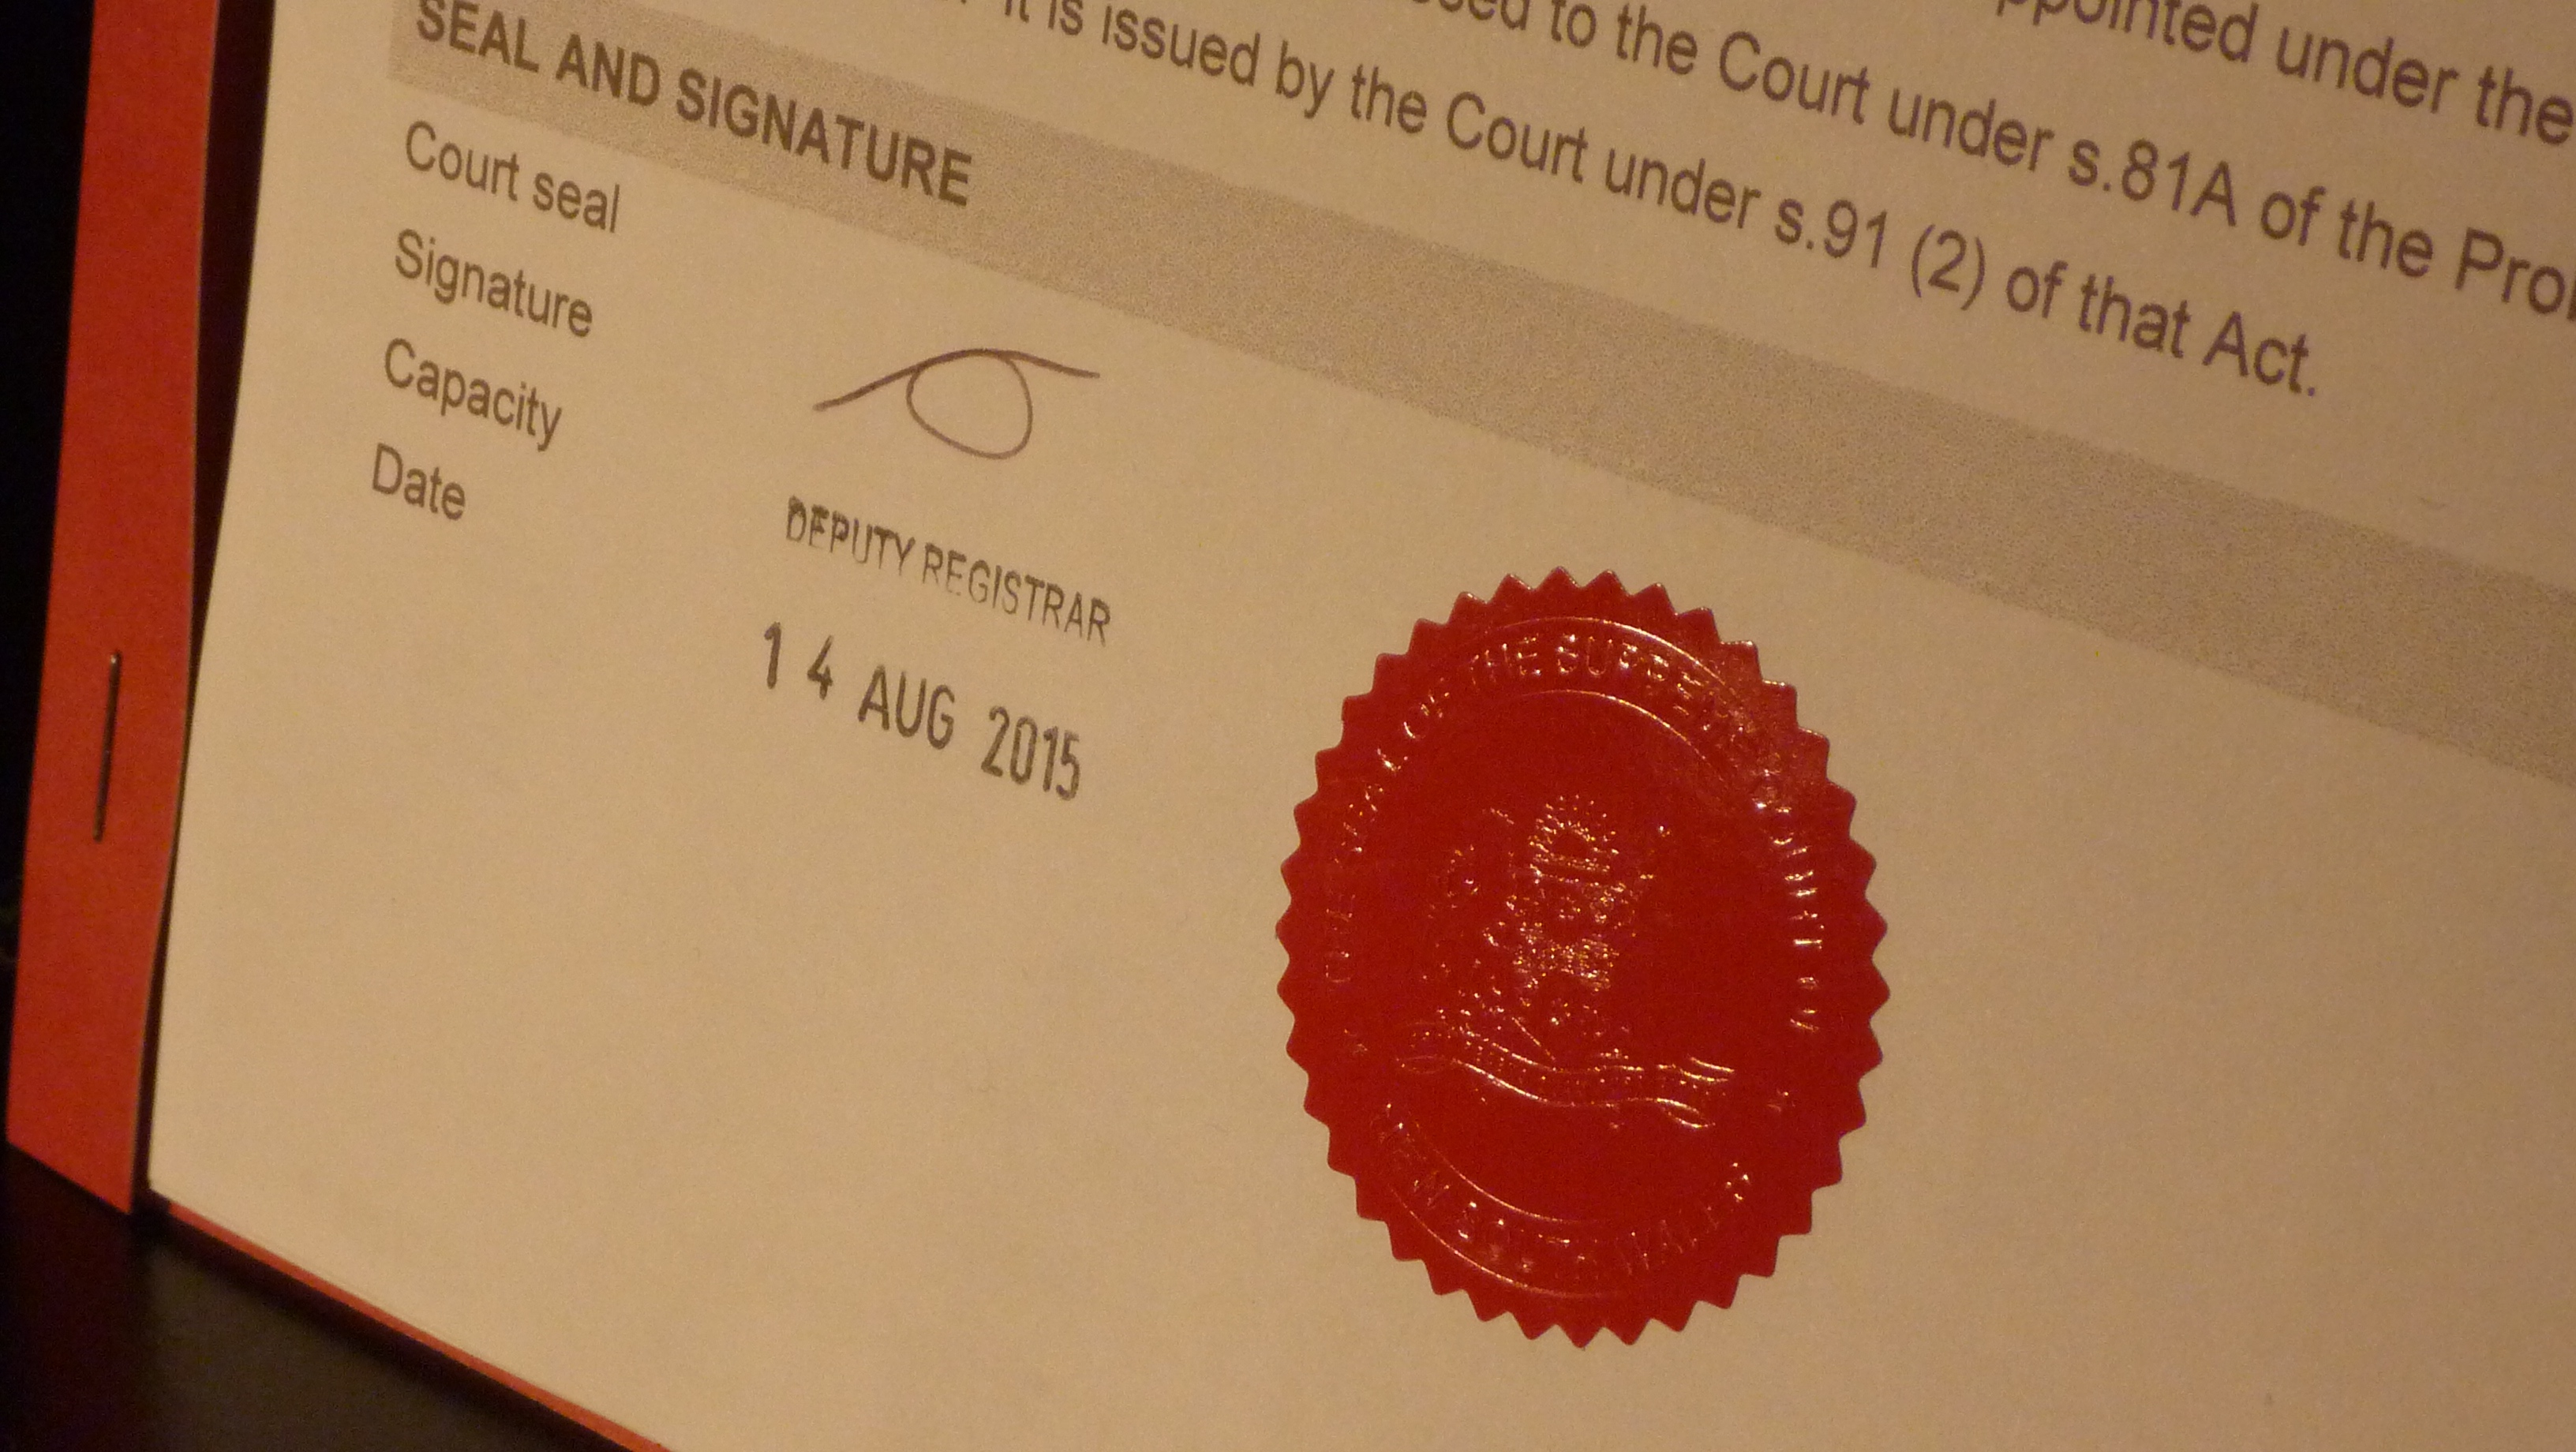 Probate Court Seal